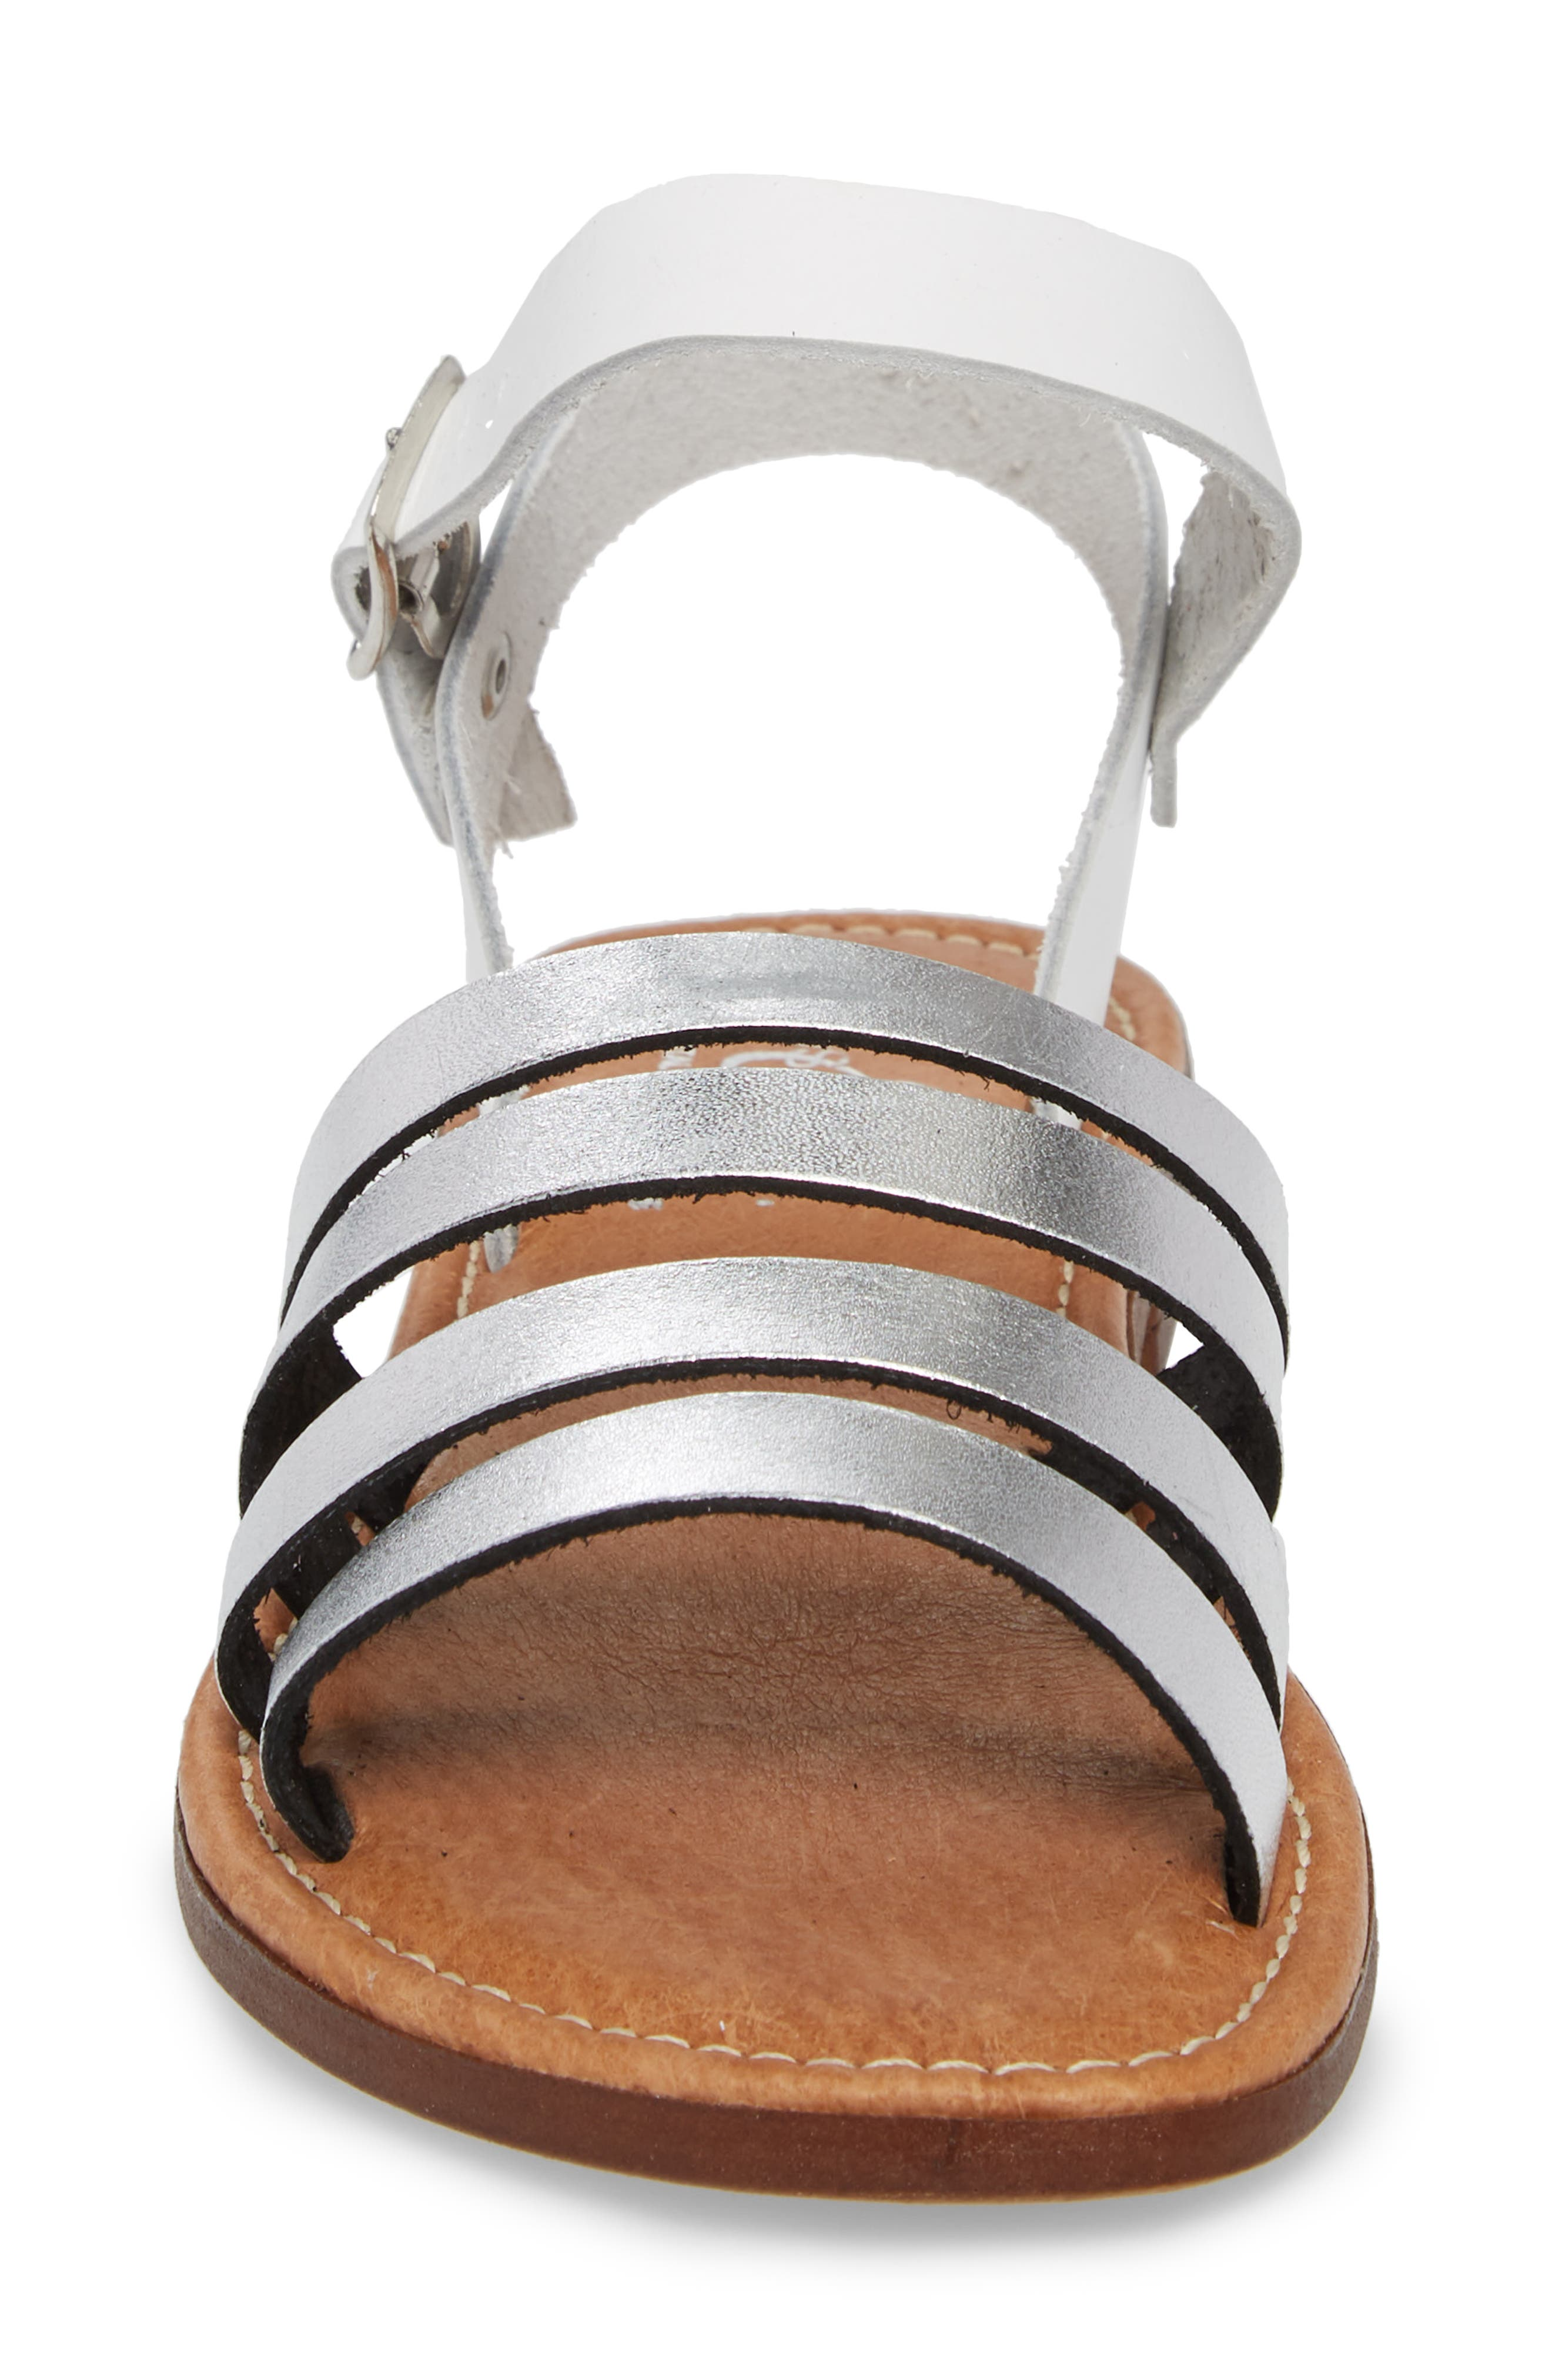 Isle Sandal,                             Alternate thumbnail 4, color,                             Silver/ White Leather